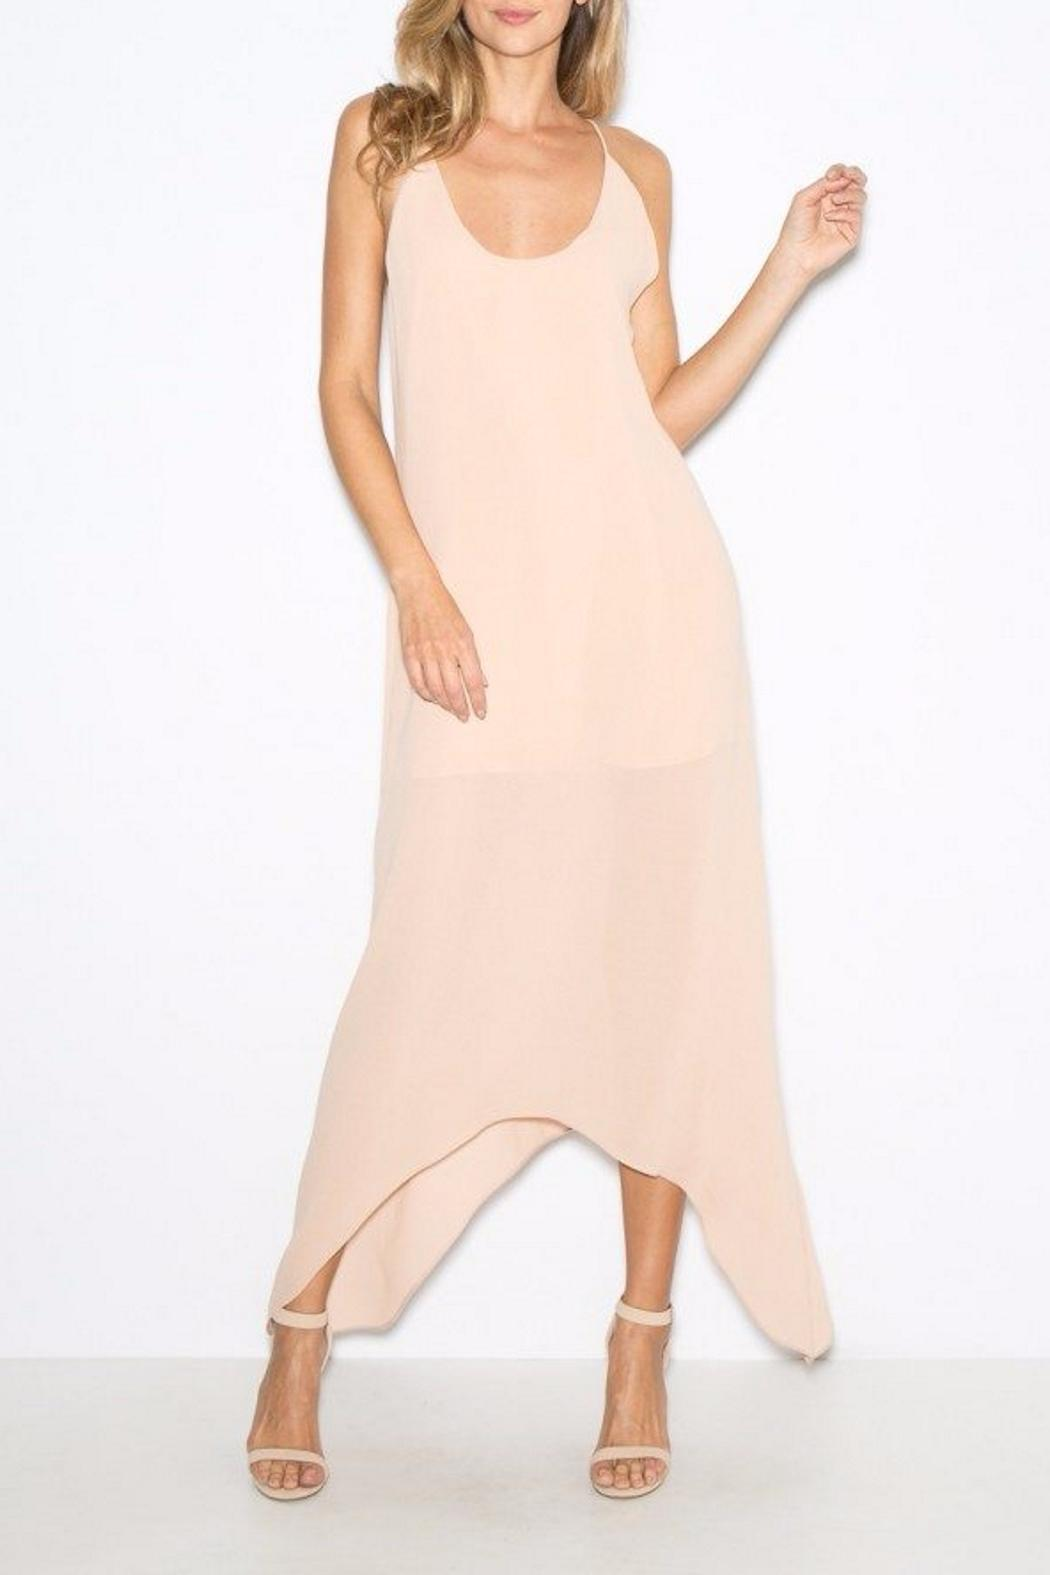 Rory Beca Castanets Gown - Main Image